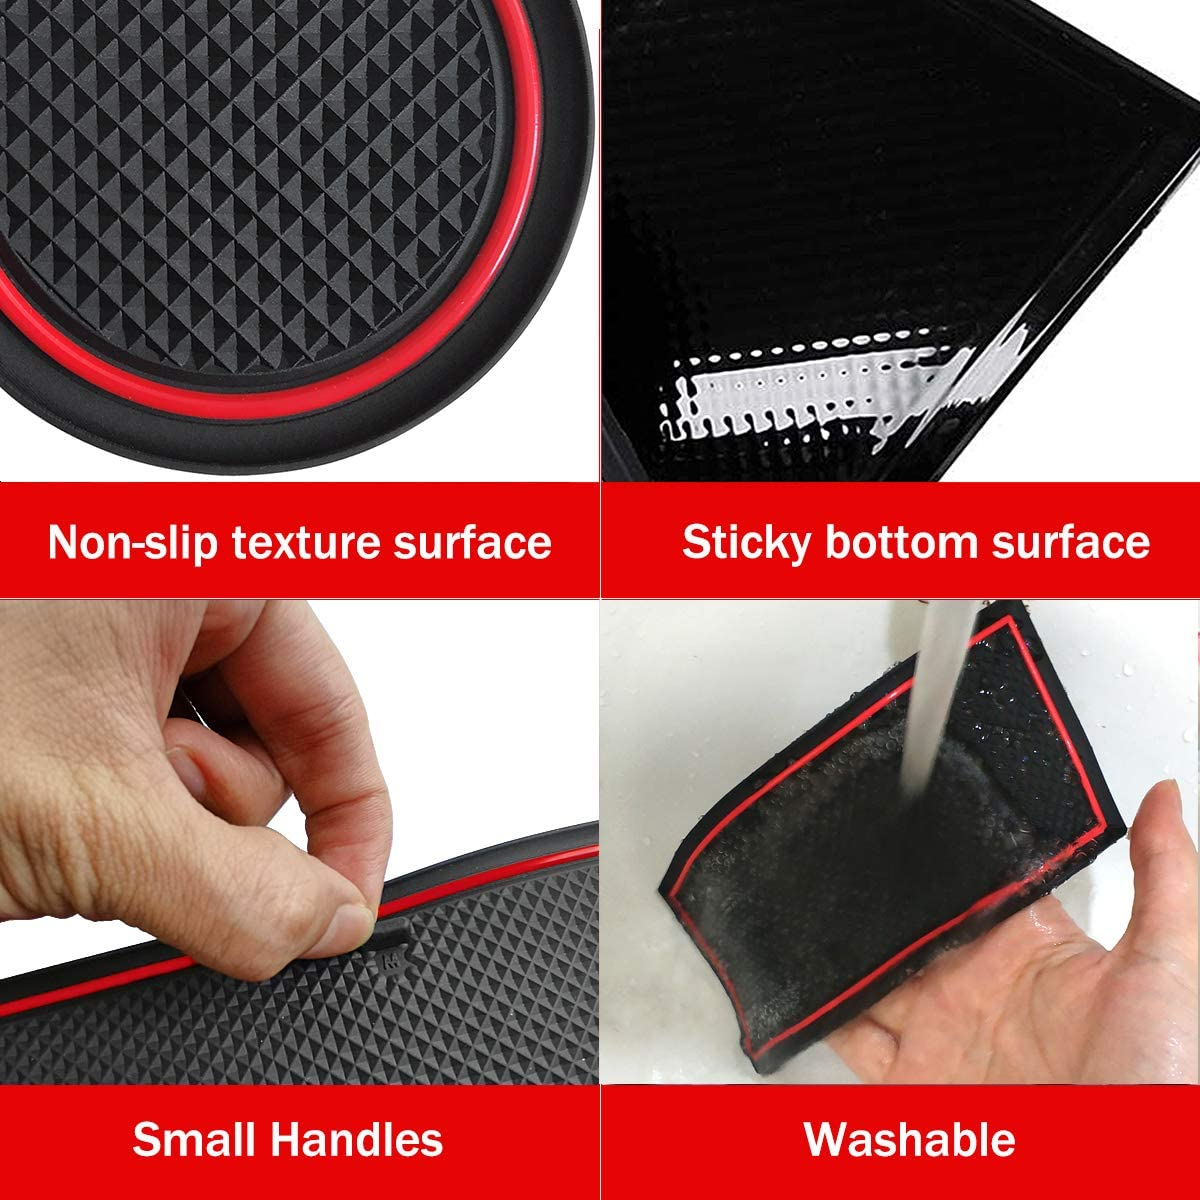 Red Auovo Anti Dust Mats for Mercedes-Benz C-Class C300 Sedan Coupe 2015-2020 Custom Fit Door Compartment Liners Cup Holder Console Liners Interior Accessories 8pcs//Set